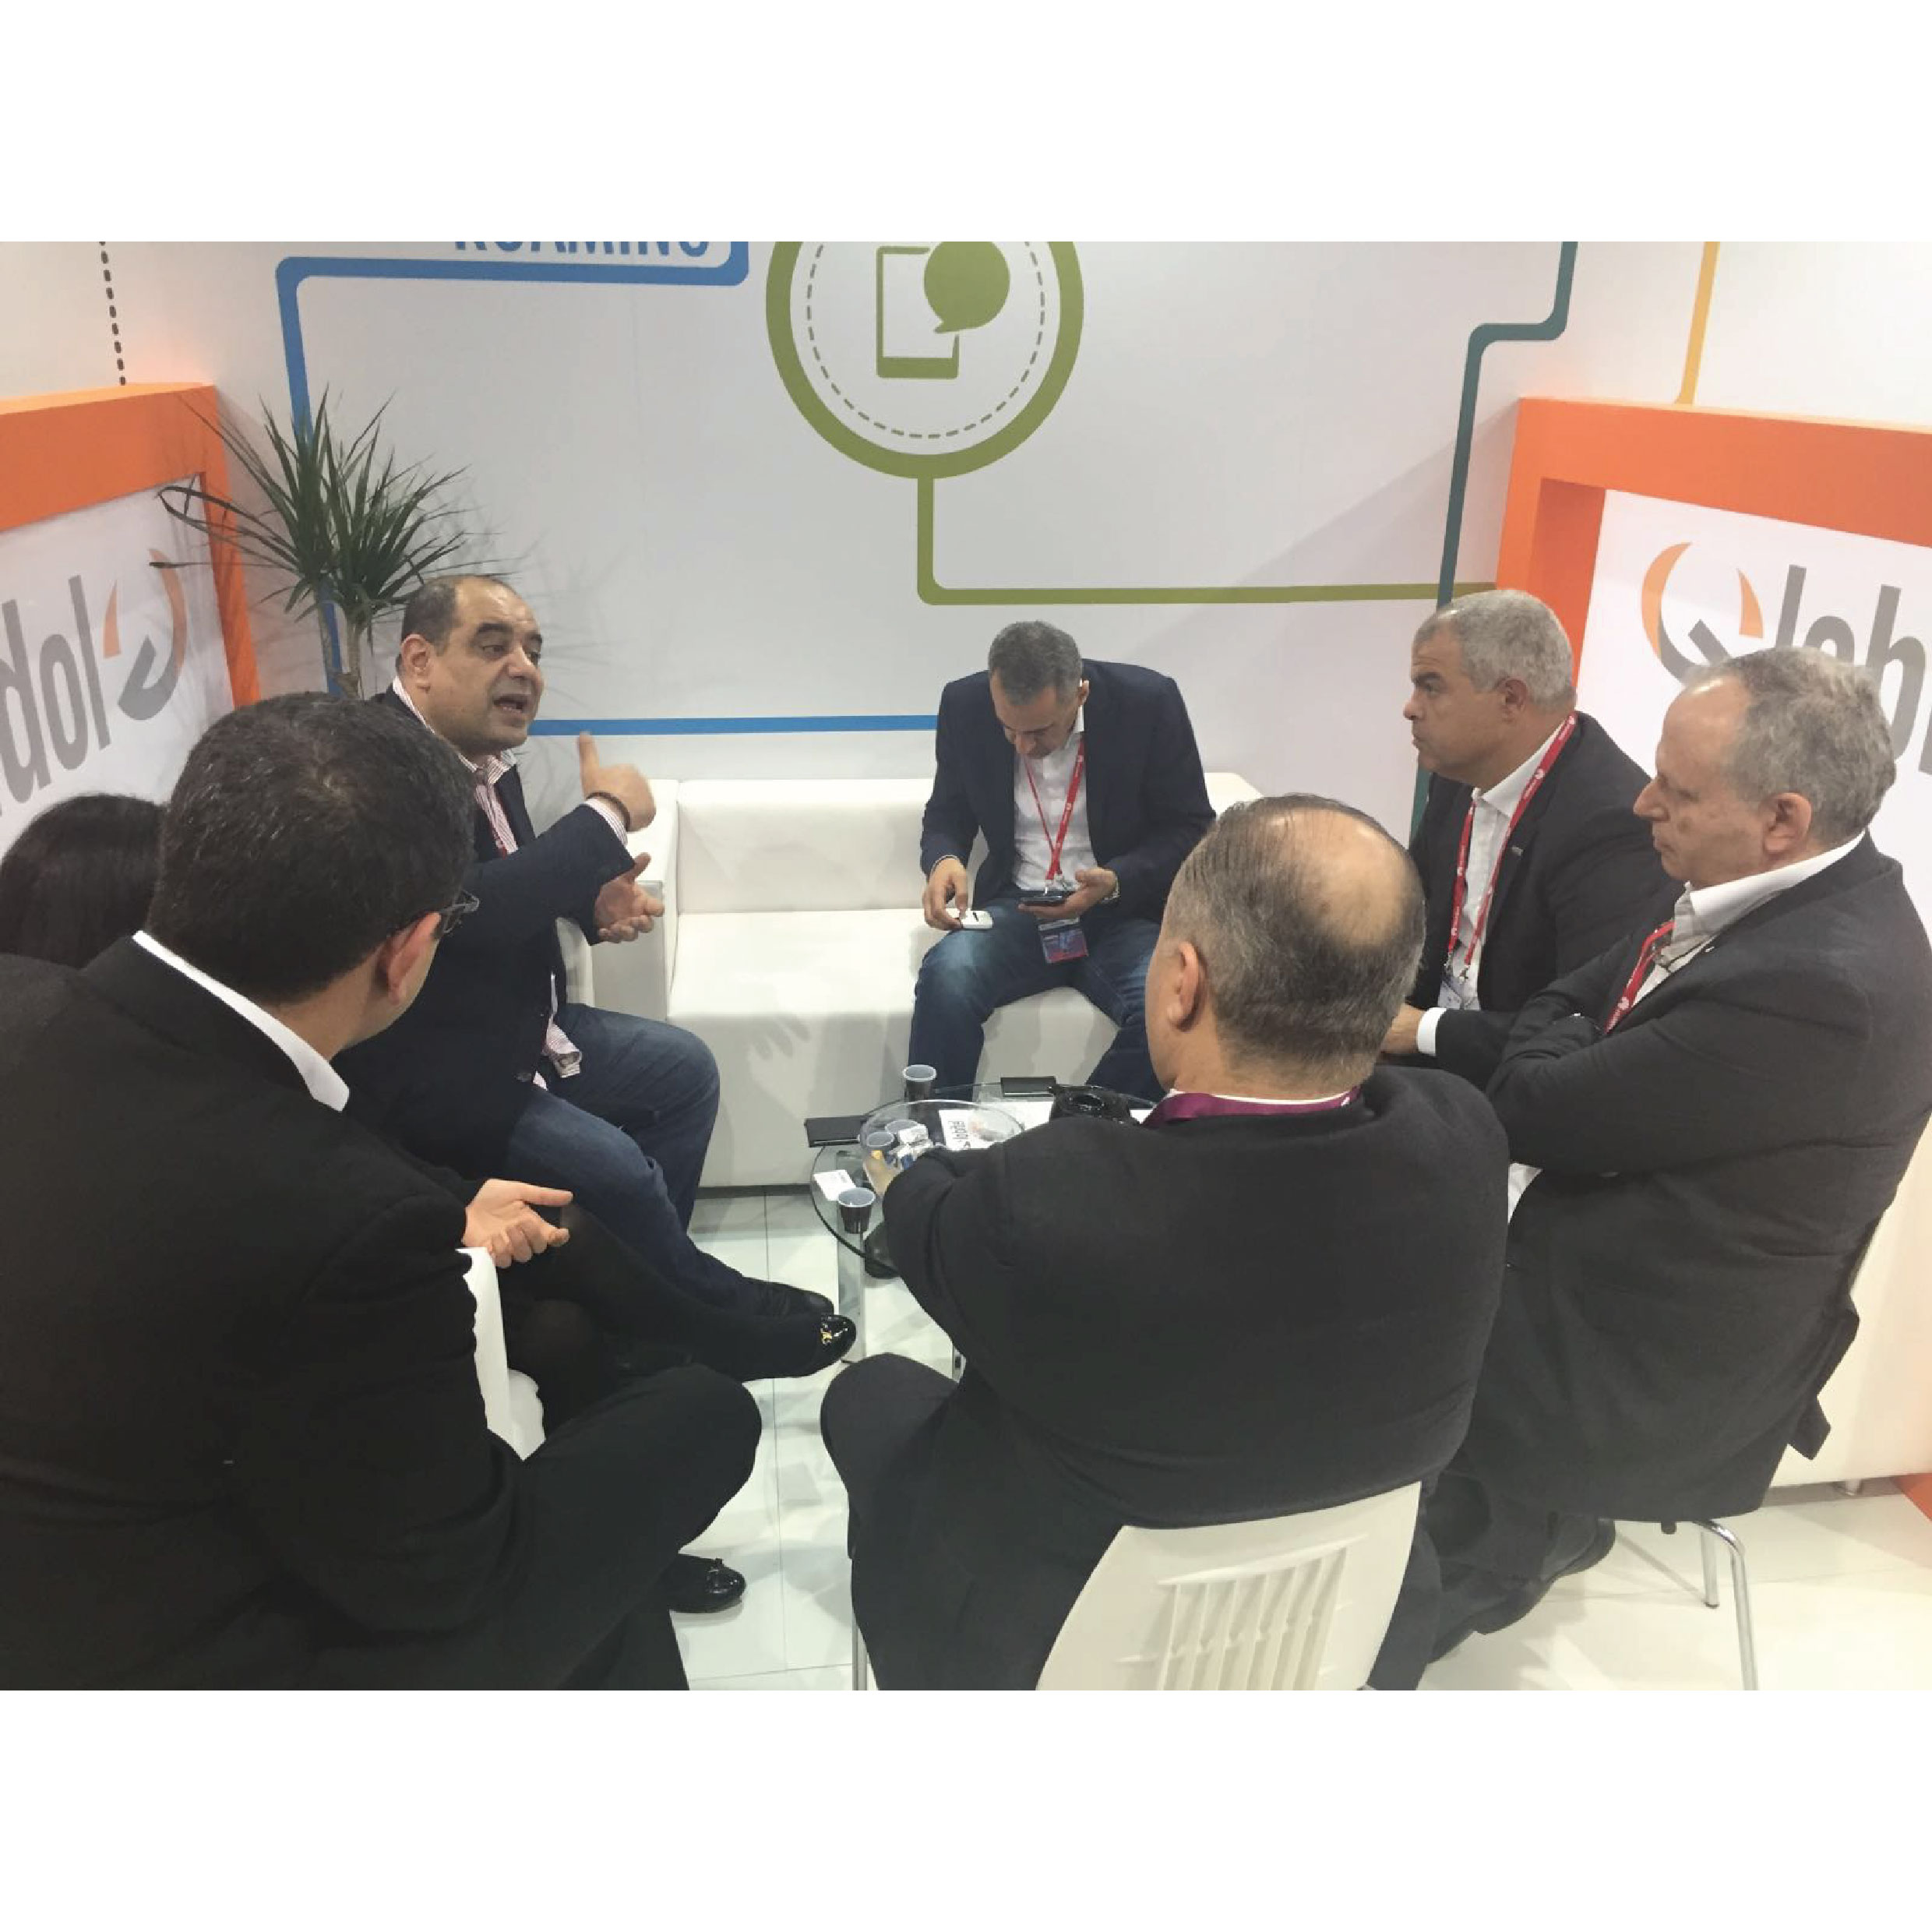 Globitel Returns with a Successful Participation & New Partnerships from the Mobile World Congress 2016